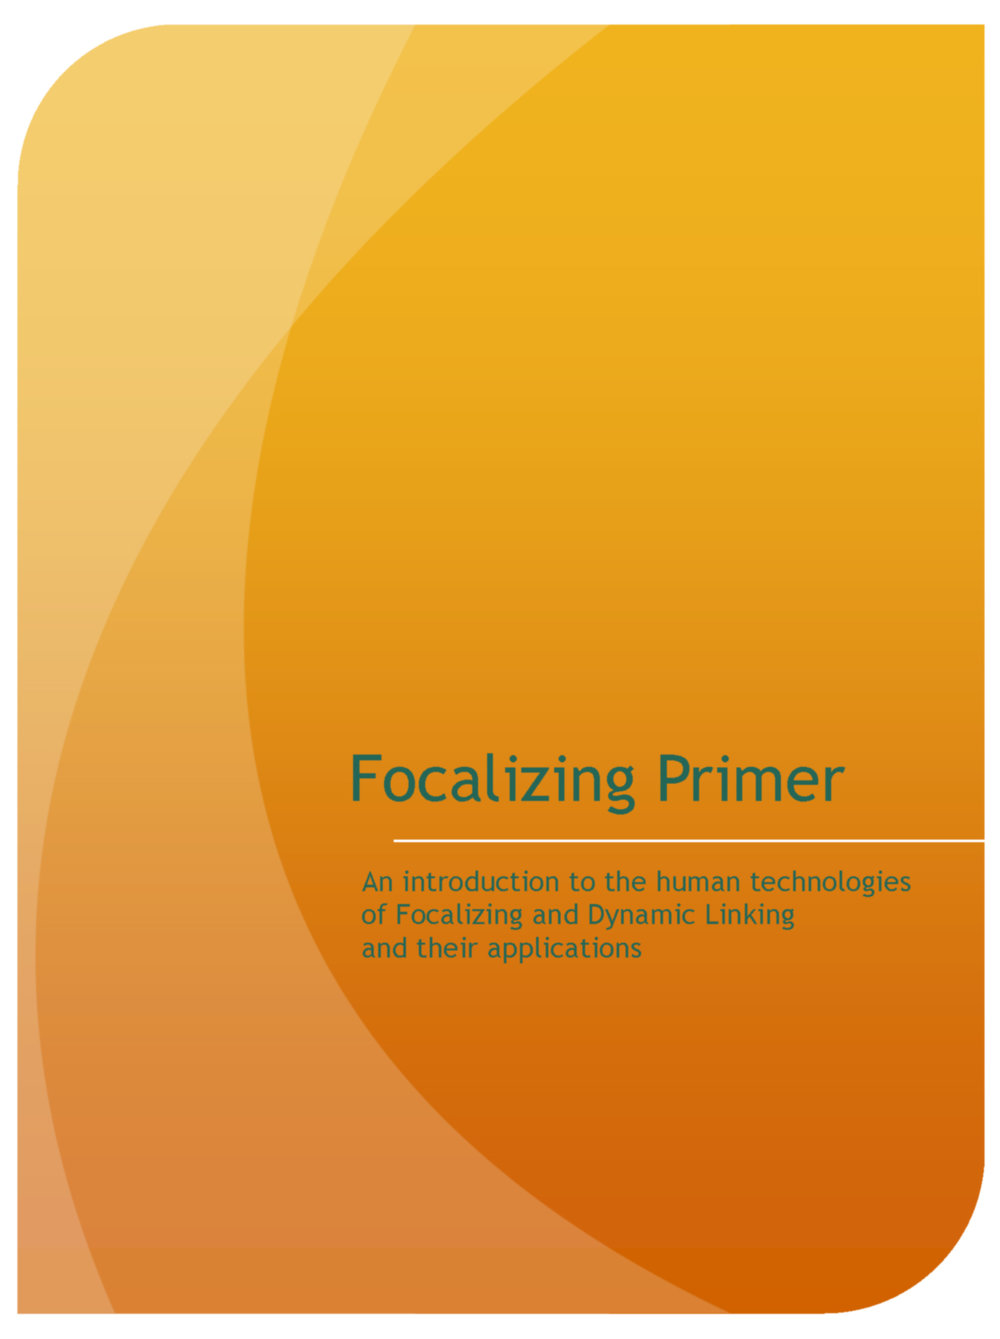 Focalizing Primer    The Focalizing Primer offers a short and clear introduction to Focalizing and Dynamic Linking and various applications of the two human technologies.